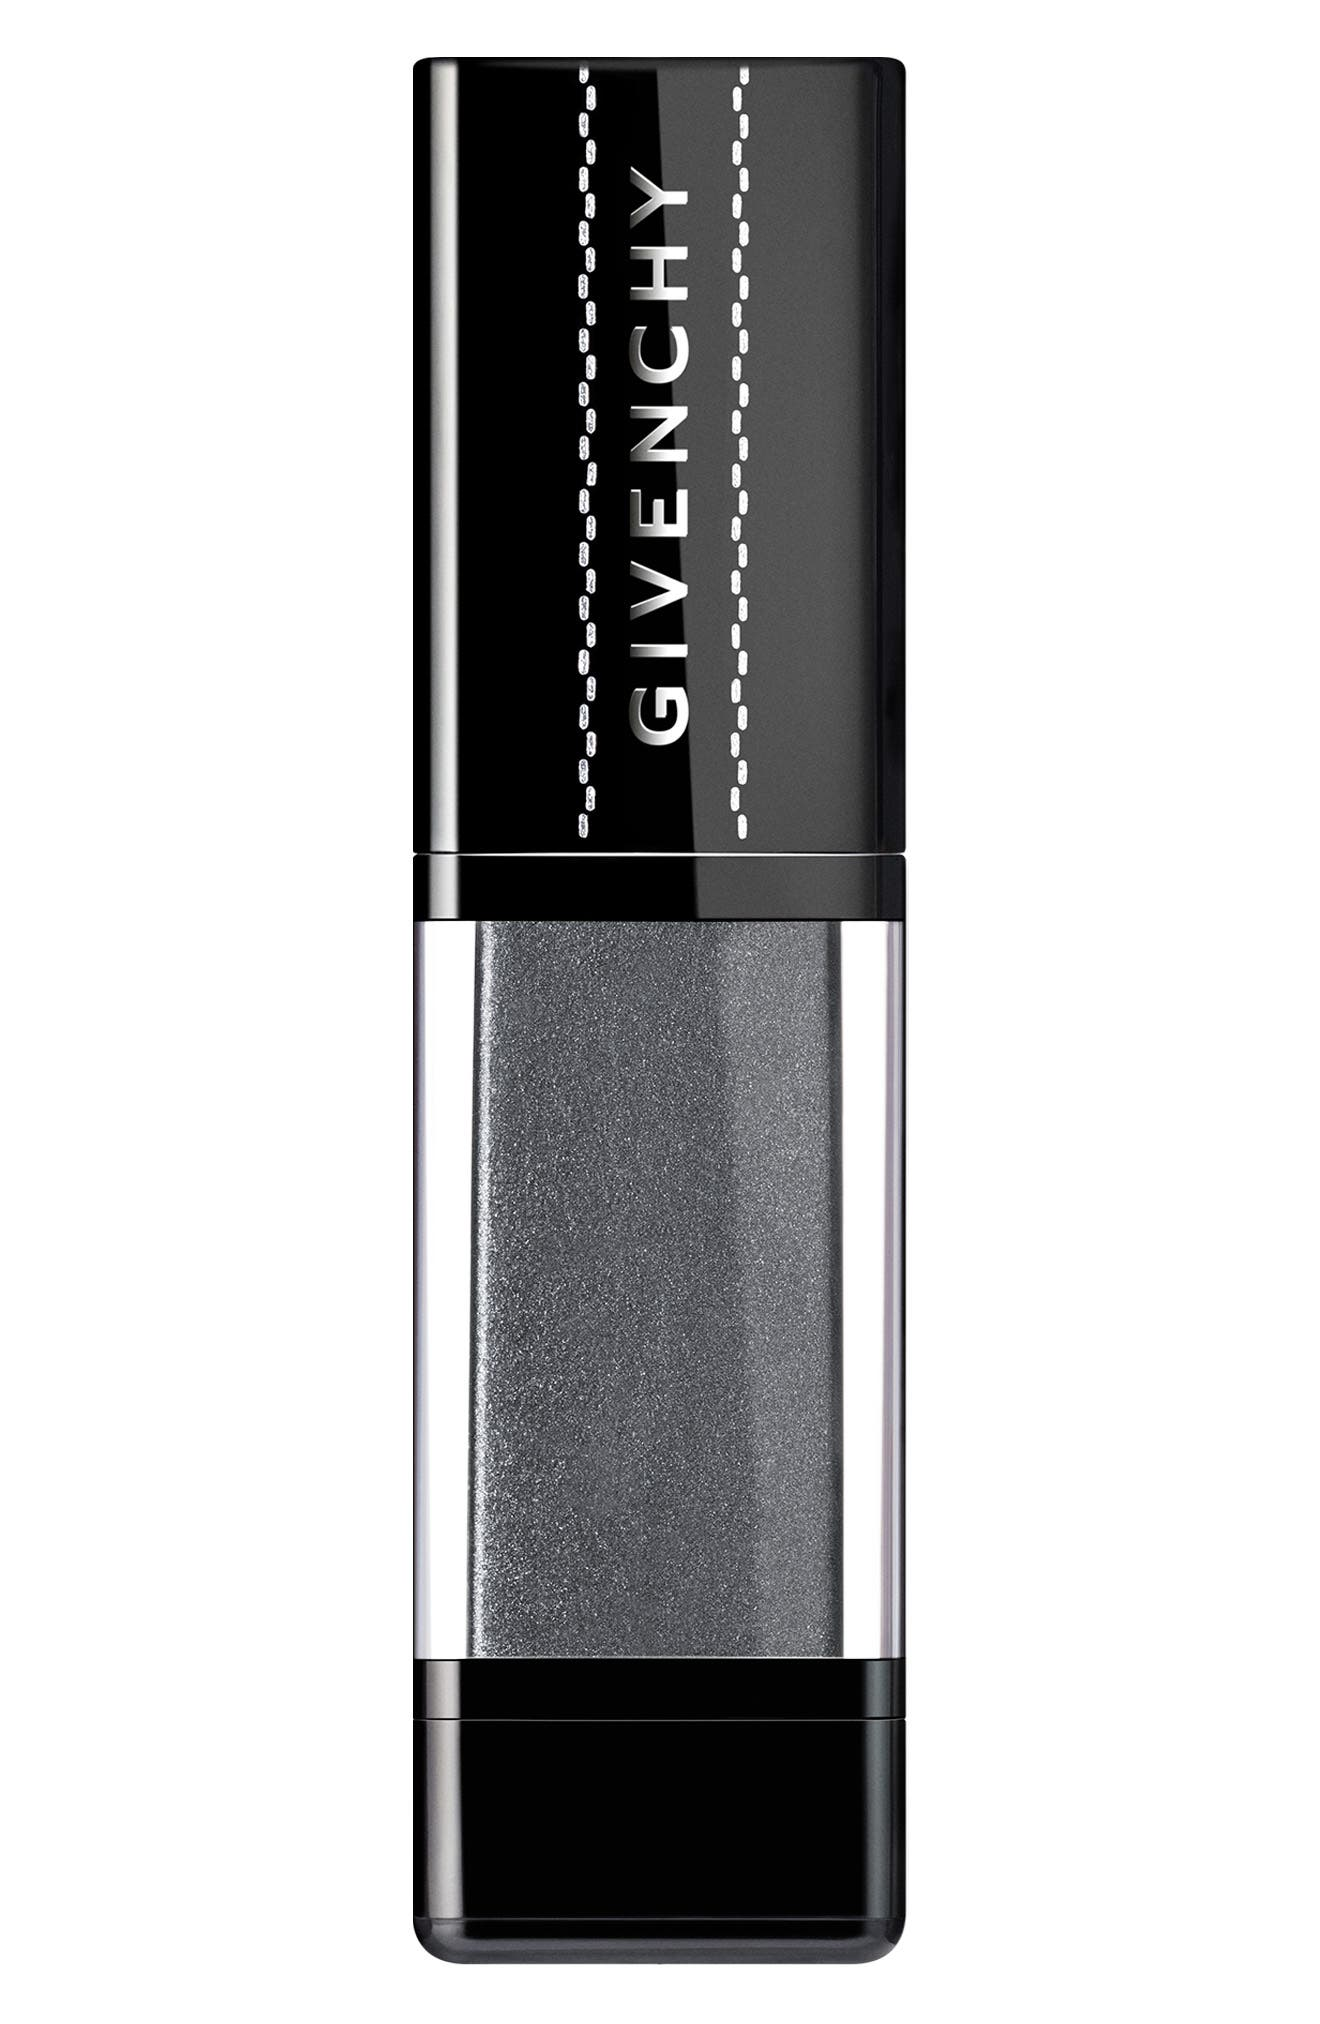 What it is: A 24 hour-wear cream eyeshadow that creates highly color-saturated makeup looks. What it does: Its innovative formula seamlessly glides onto the skin before merging instantly with your eyelid for no-transfer, 24-hour wear (in an instrumental study). Blend, layer or accentuate, the result is made for a stunning, water-resistant look. How to use: For a graphic eyeliner effect, draw a line at the base of your lashline with the tip of the